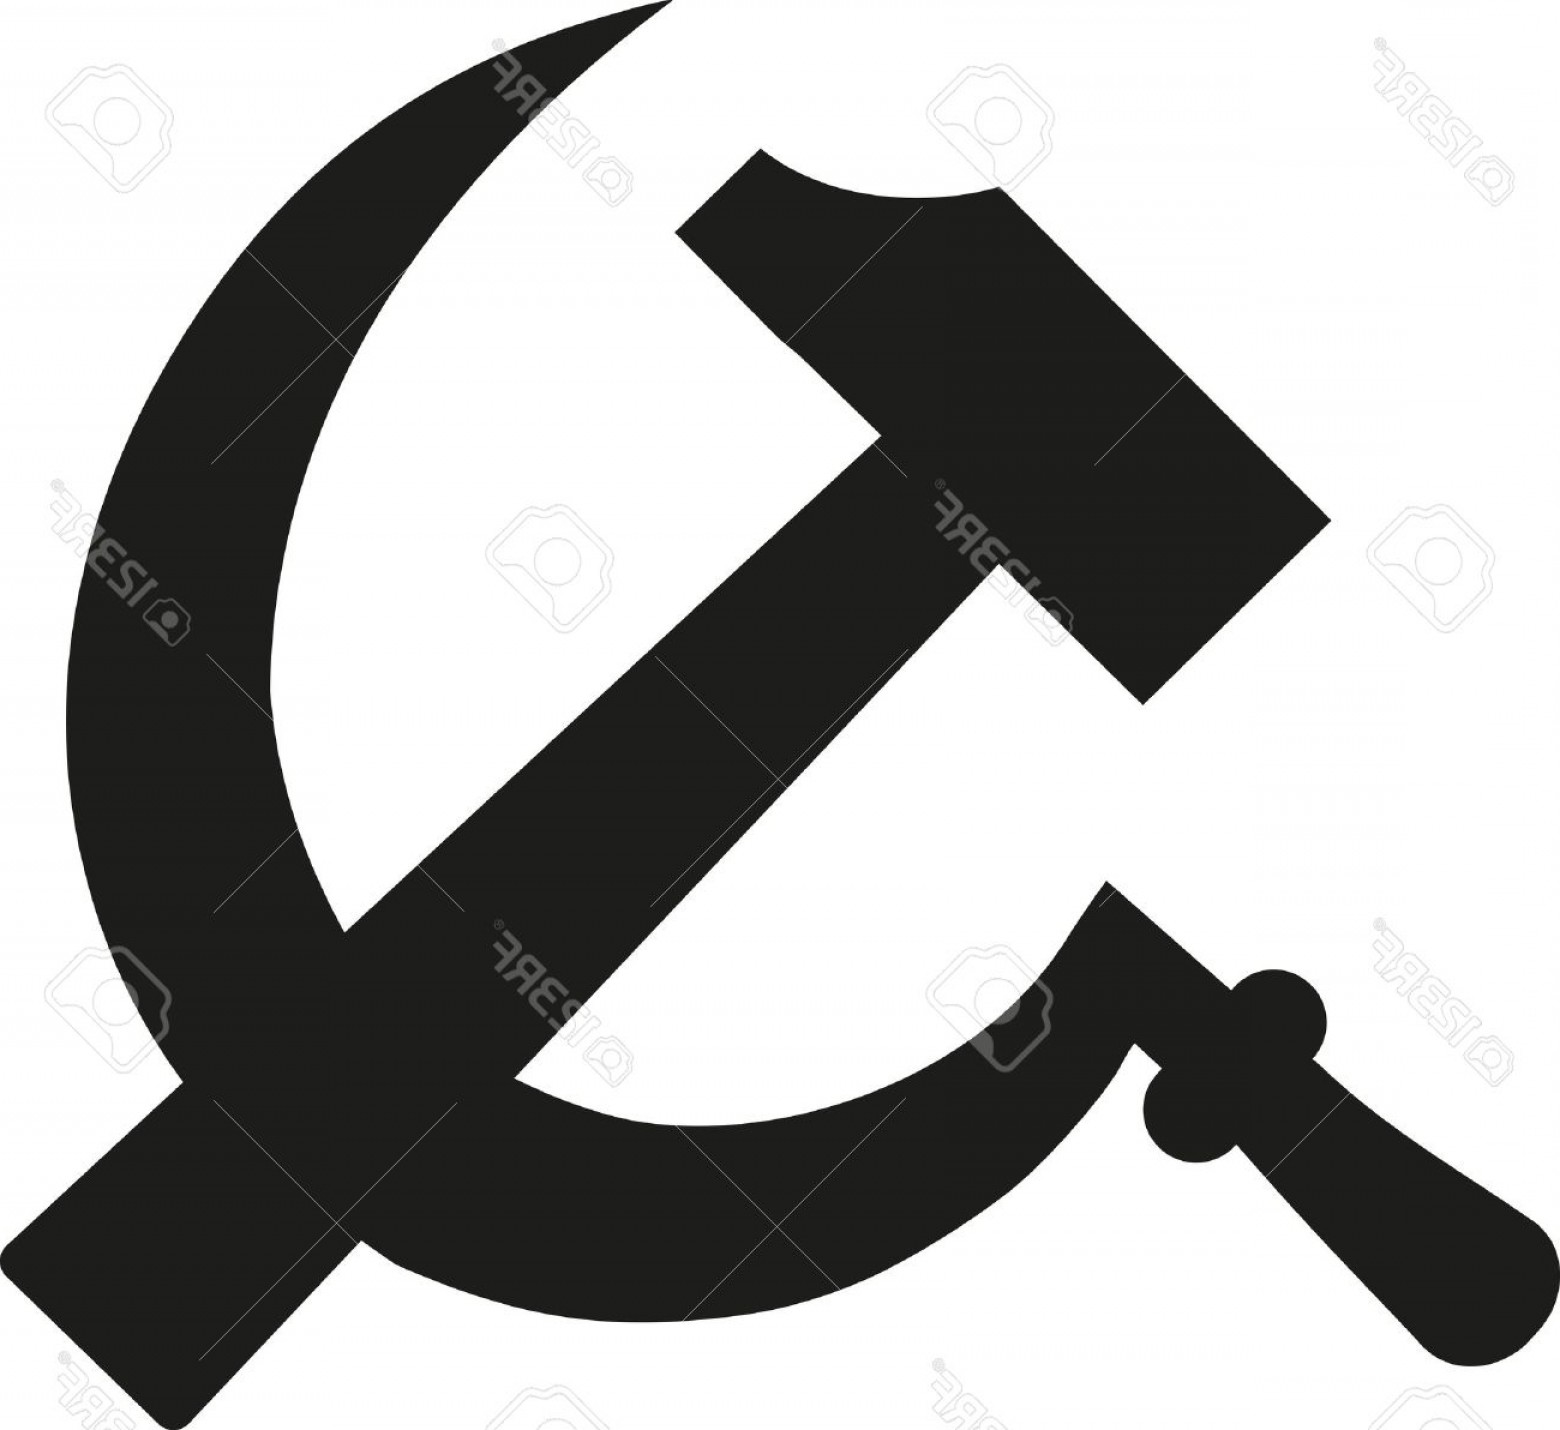 1560x1430 Photostock Vector Hammer And Sickle Communism Sign Arenawp